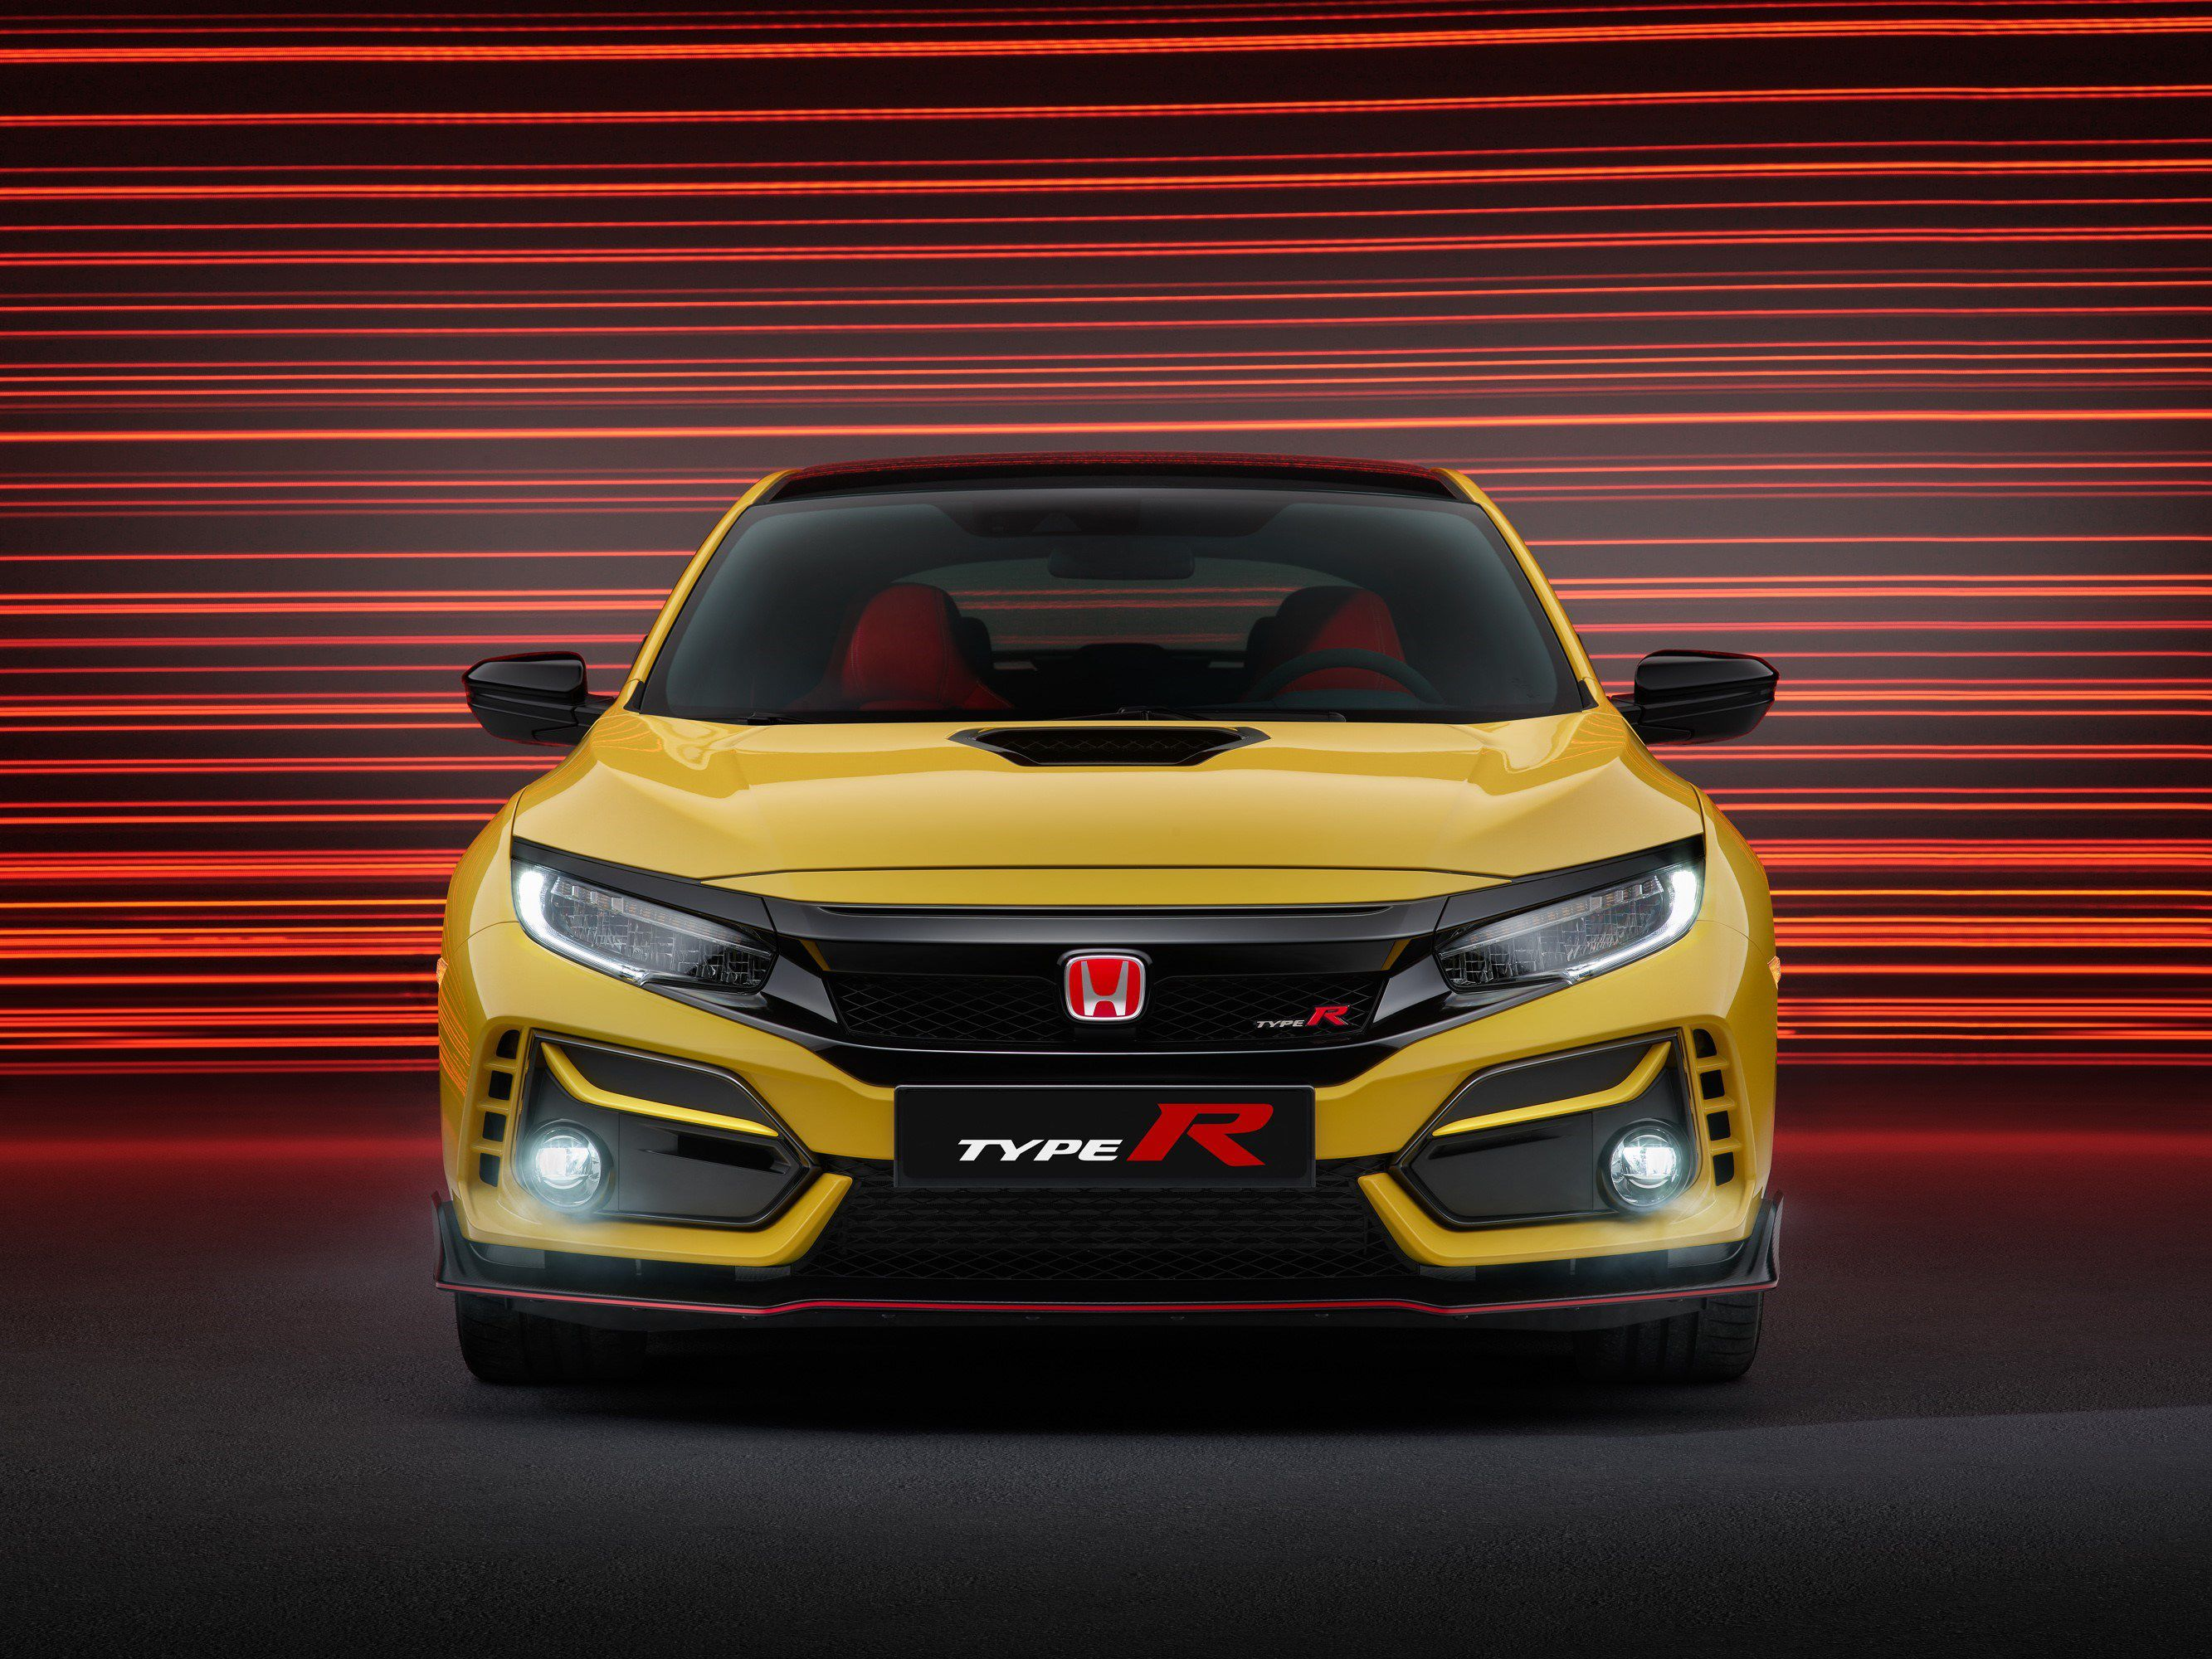 Front view of the Civic Type R